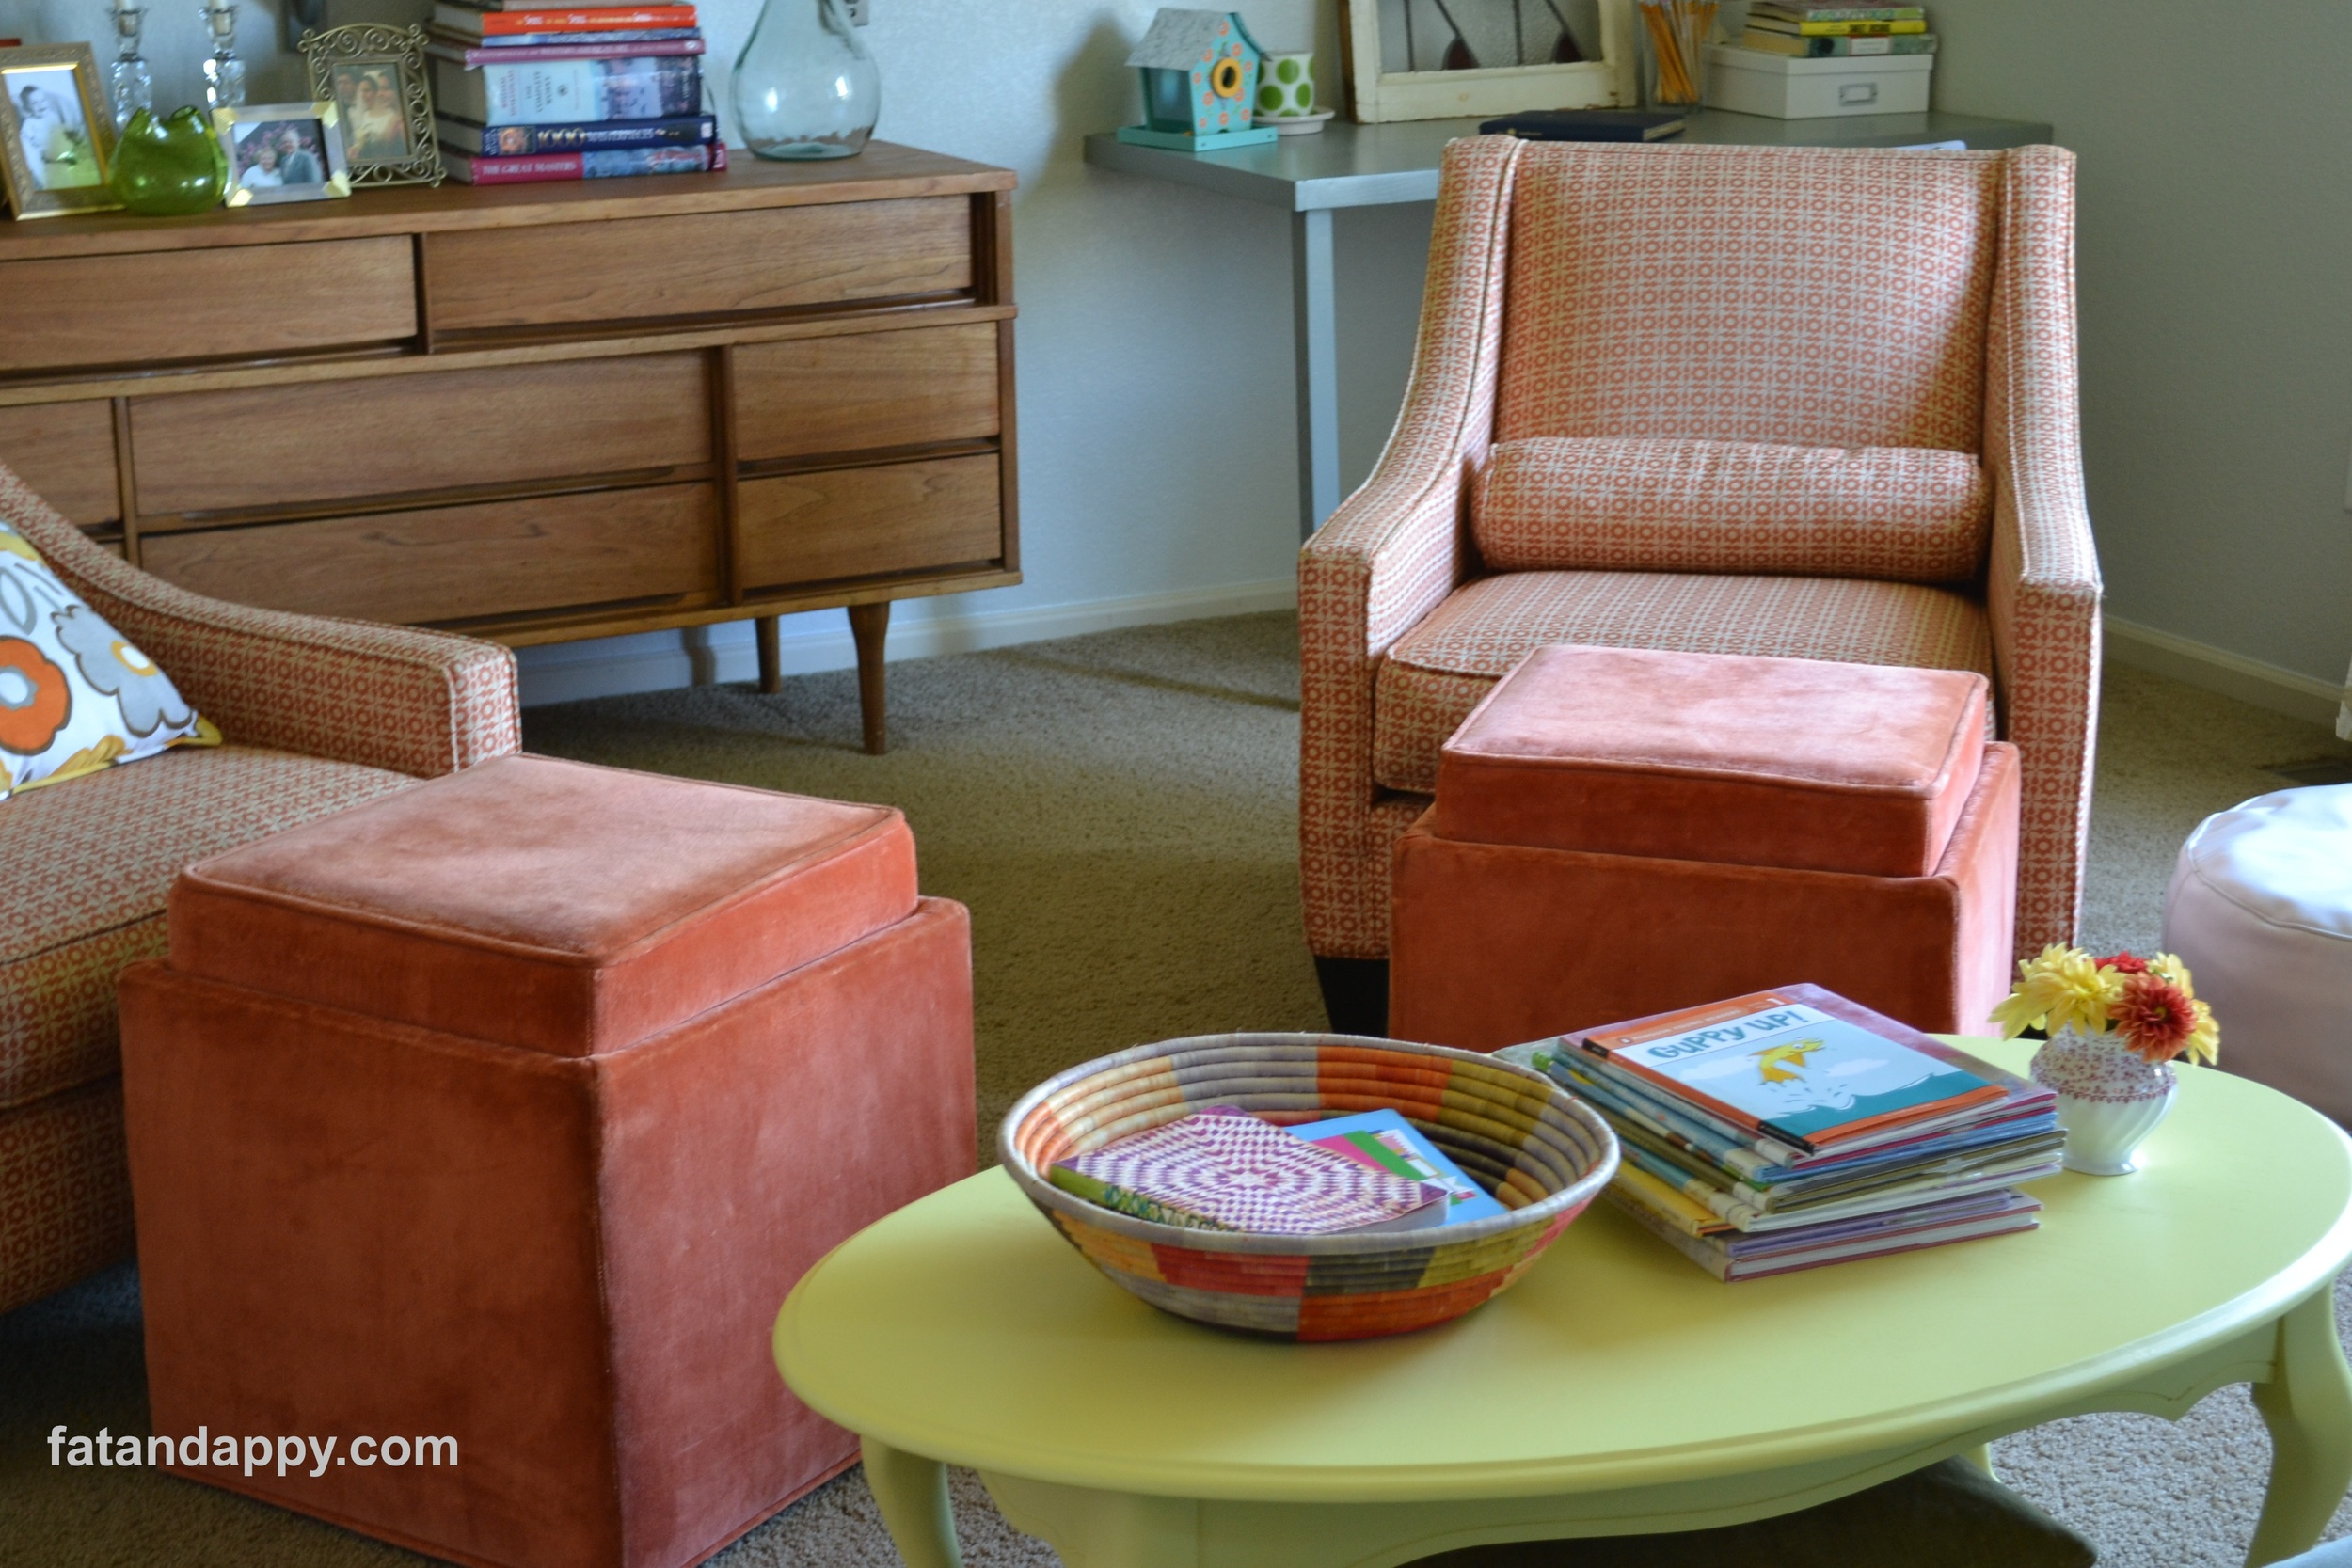 Two orange chairs with a yellow coffee table